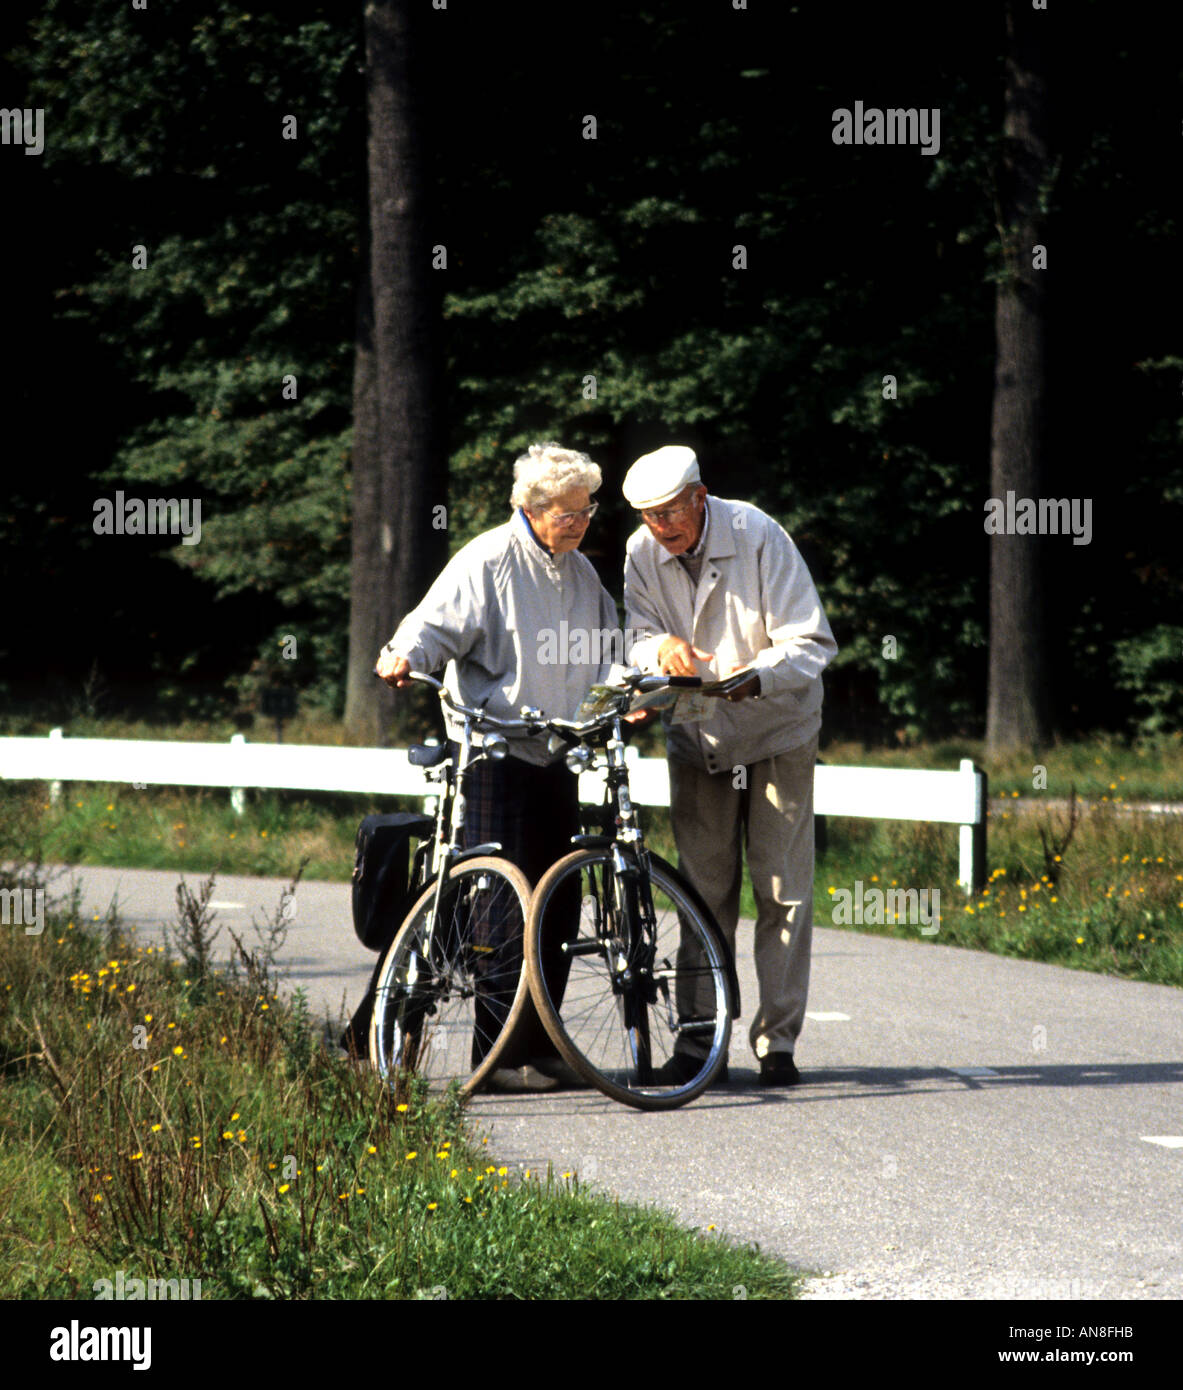 Old people reading map bicycle cycle bike biking cycling cyclists ...